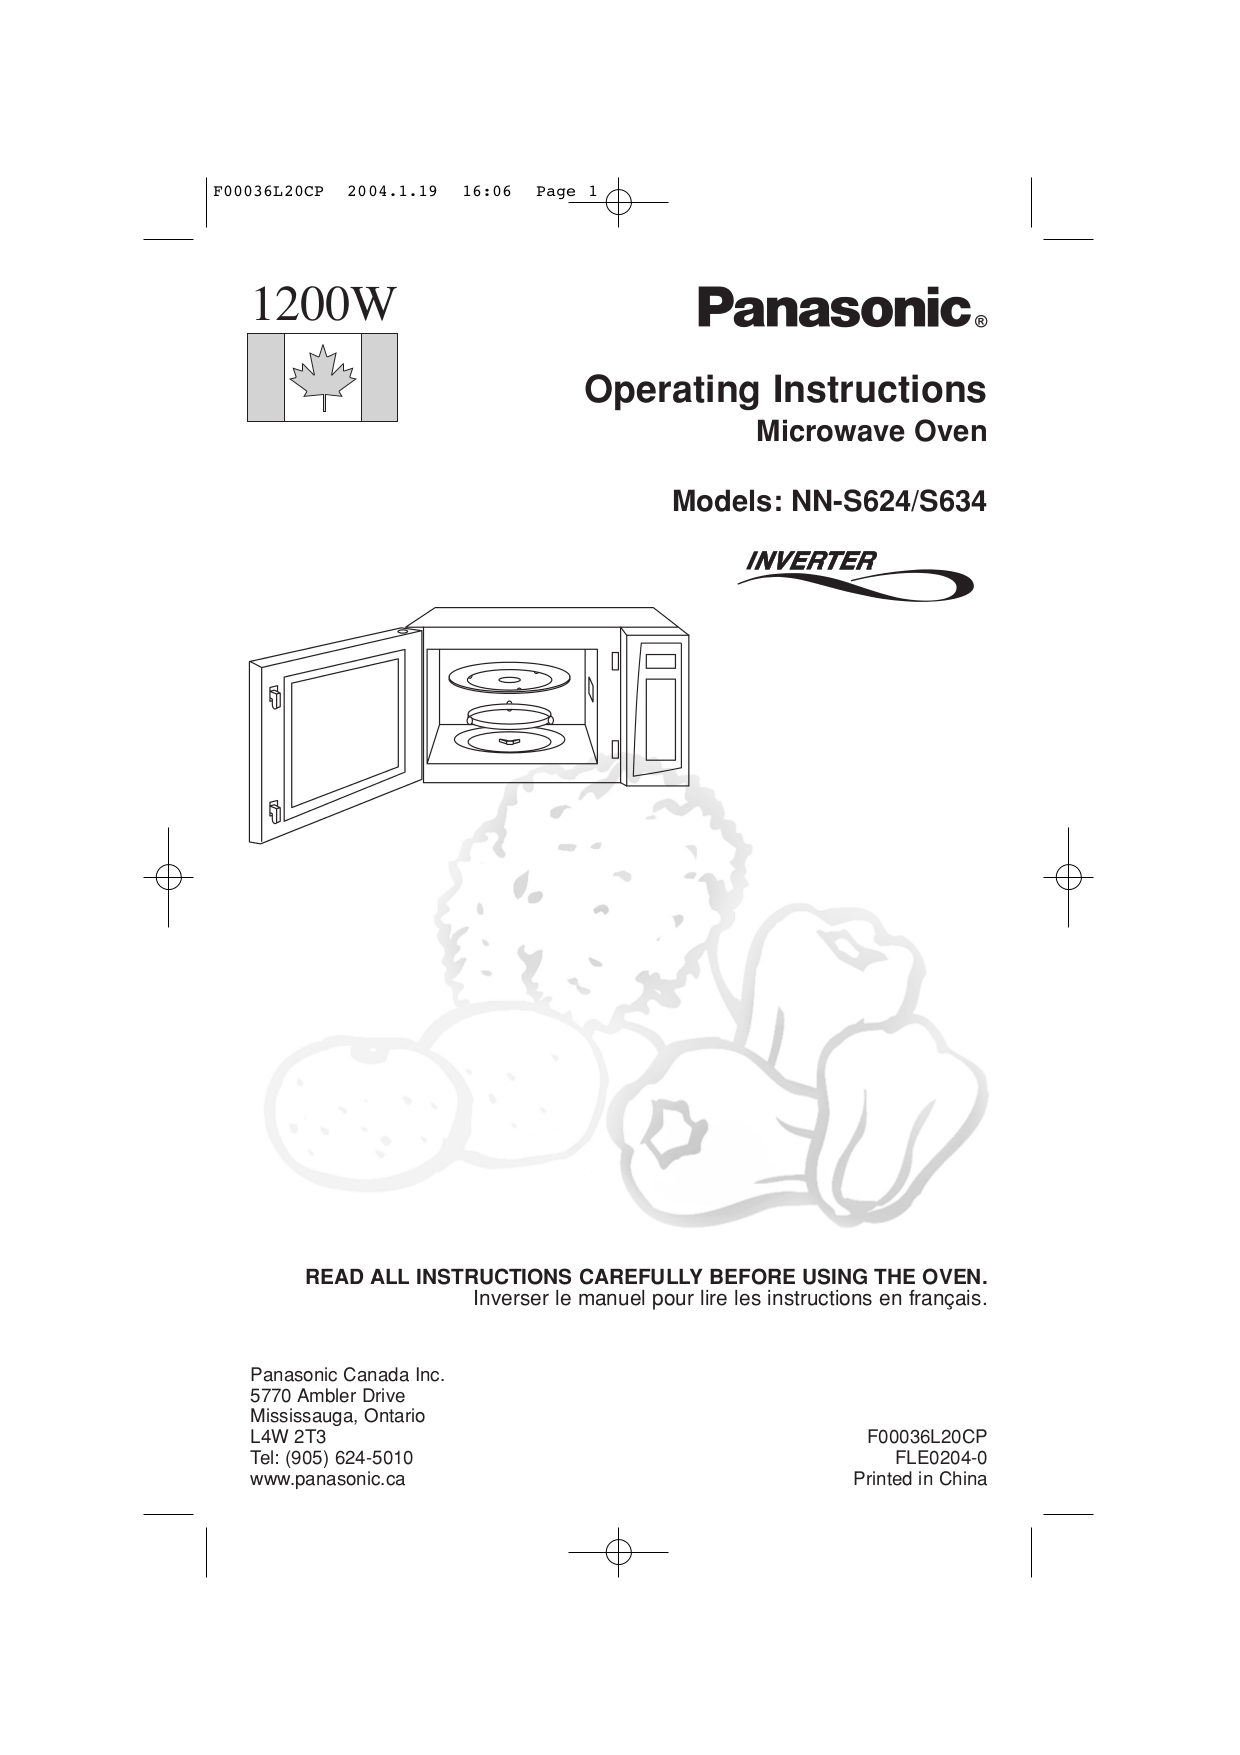 Panasonic Manual Microwave